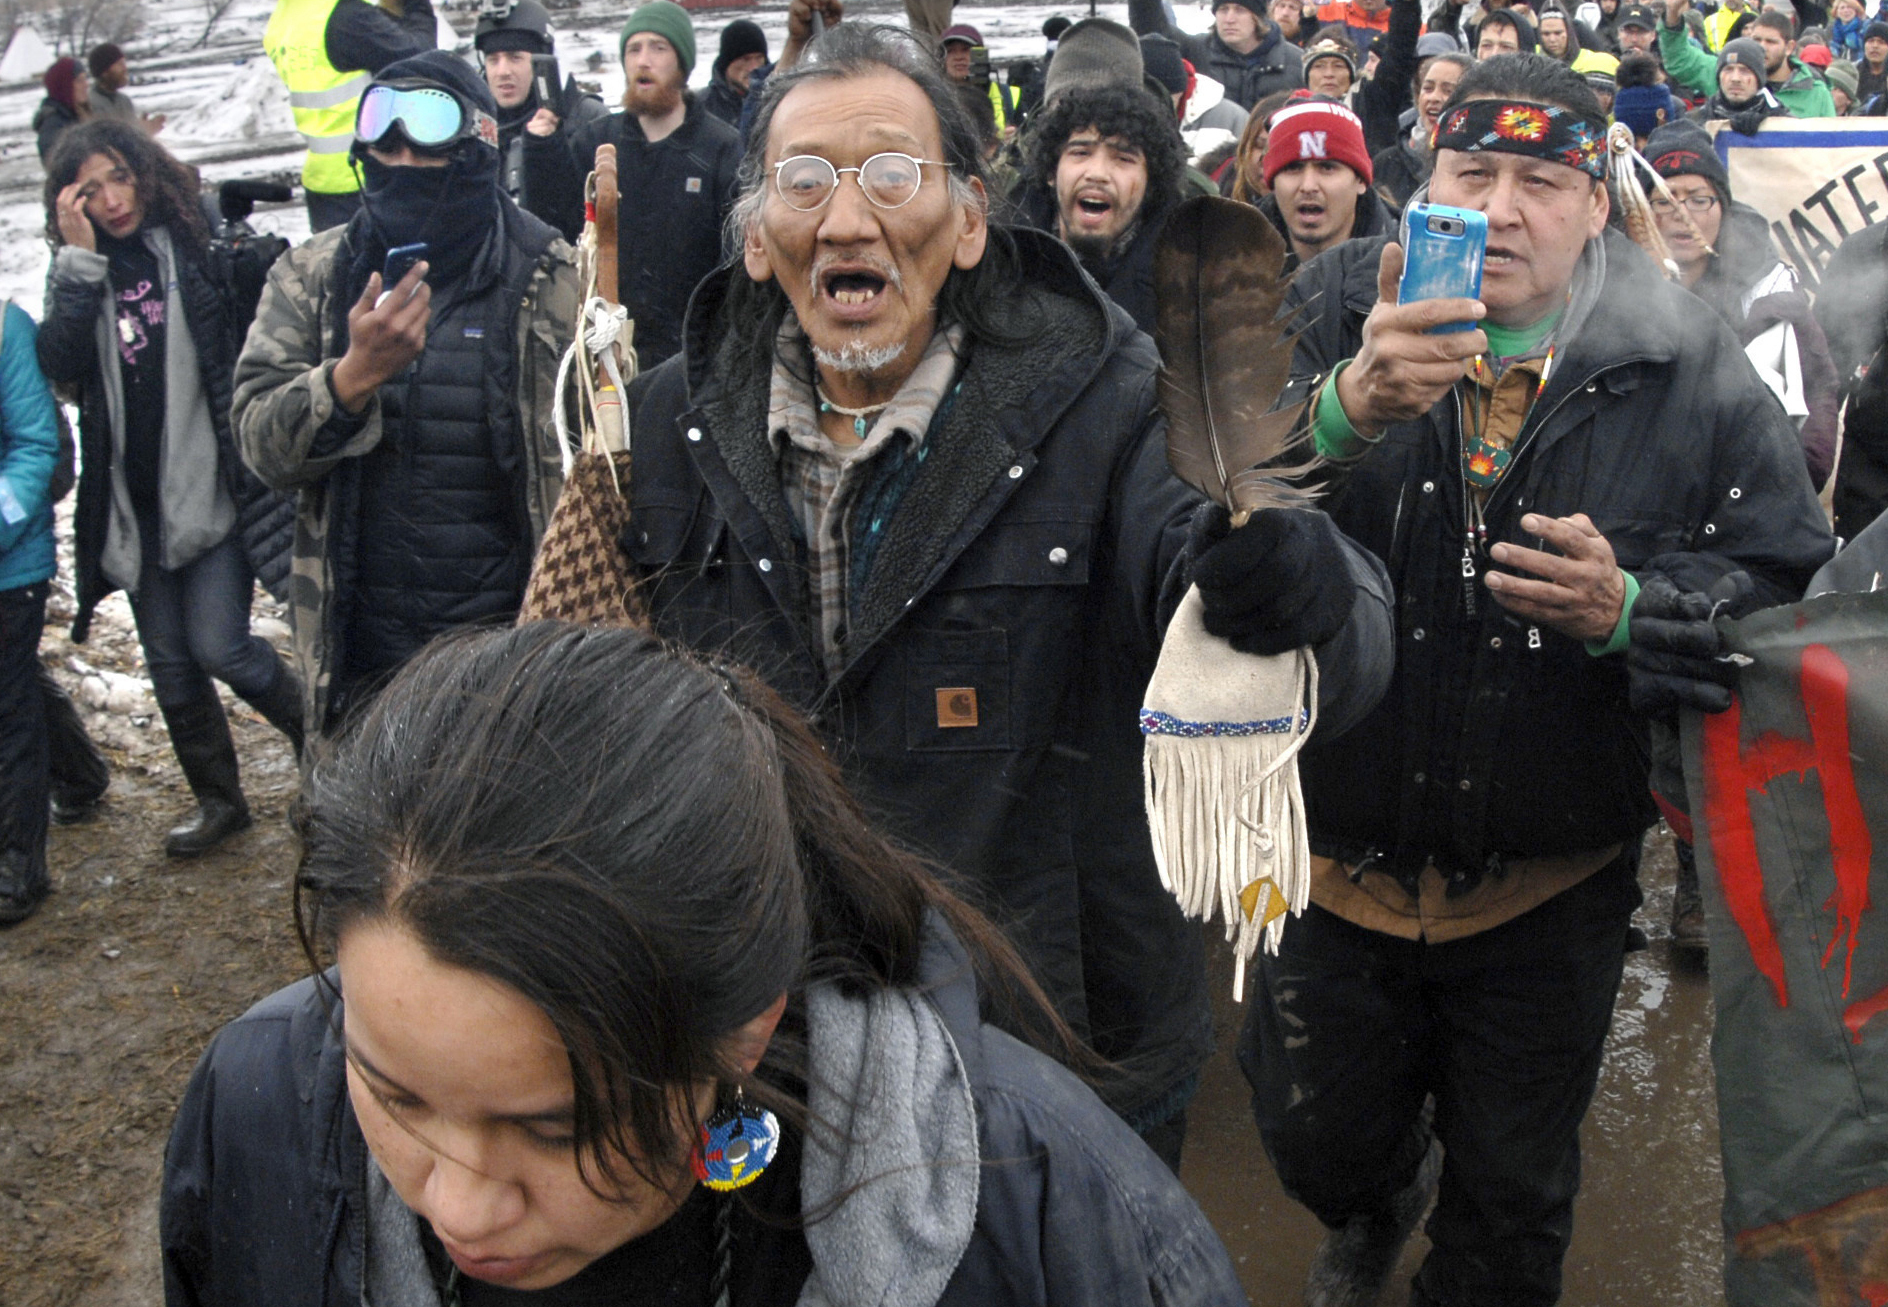 In this Feb. 22, 2017, file photo, a large crowd representing a majority of the remaining Dakota Access Pipeline protesters, including Nathan Phillips, center with glasses, march out of the Oceti Sakowin camp before the deadline set for evacuation of the camp near Cannon Ball, N.D. Phillips says he felt compelled to get between a group of black religious activists and largely white students with his ceremonial drum to defuse a potentially dangerous situation at a rally in Washington. (Mike McCleary/The Bismarck Tribune via AP)